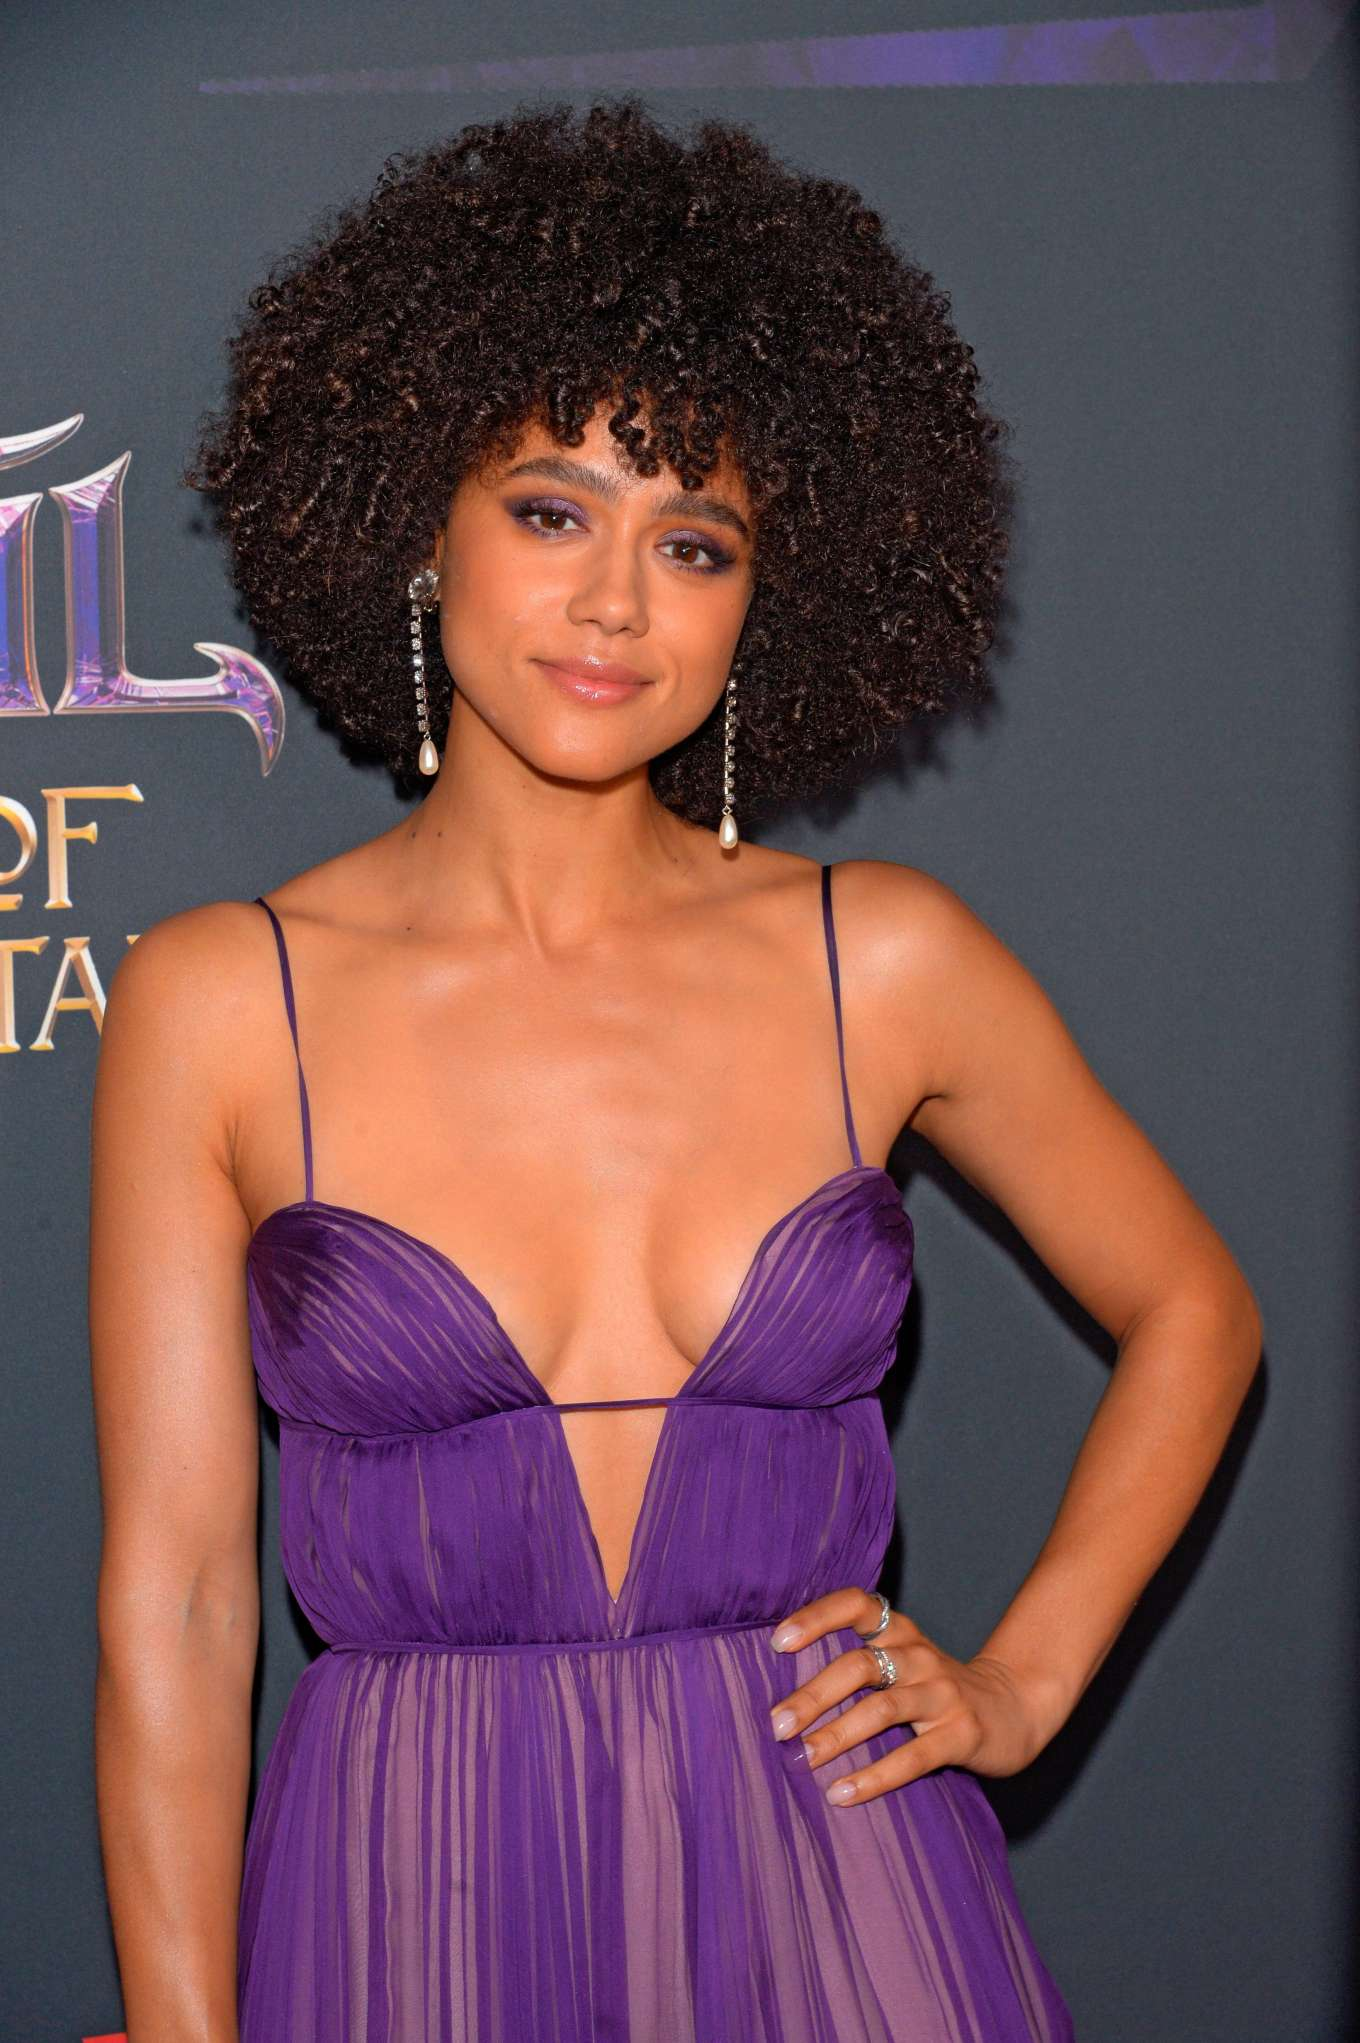 Nathalie Emmanuel - The Dark Crystal - Age of Resistance photocall in NYC